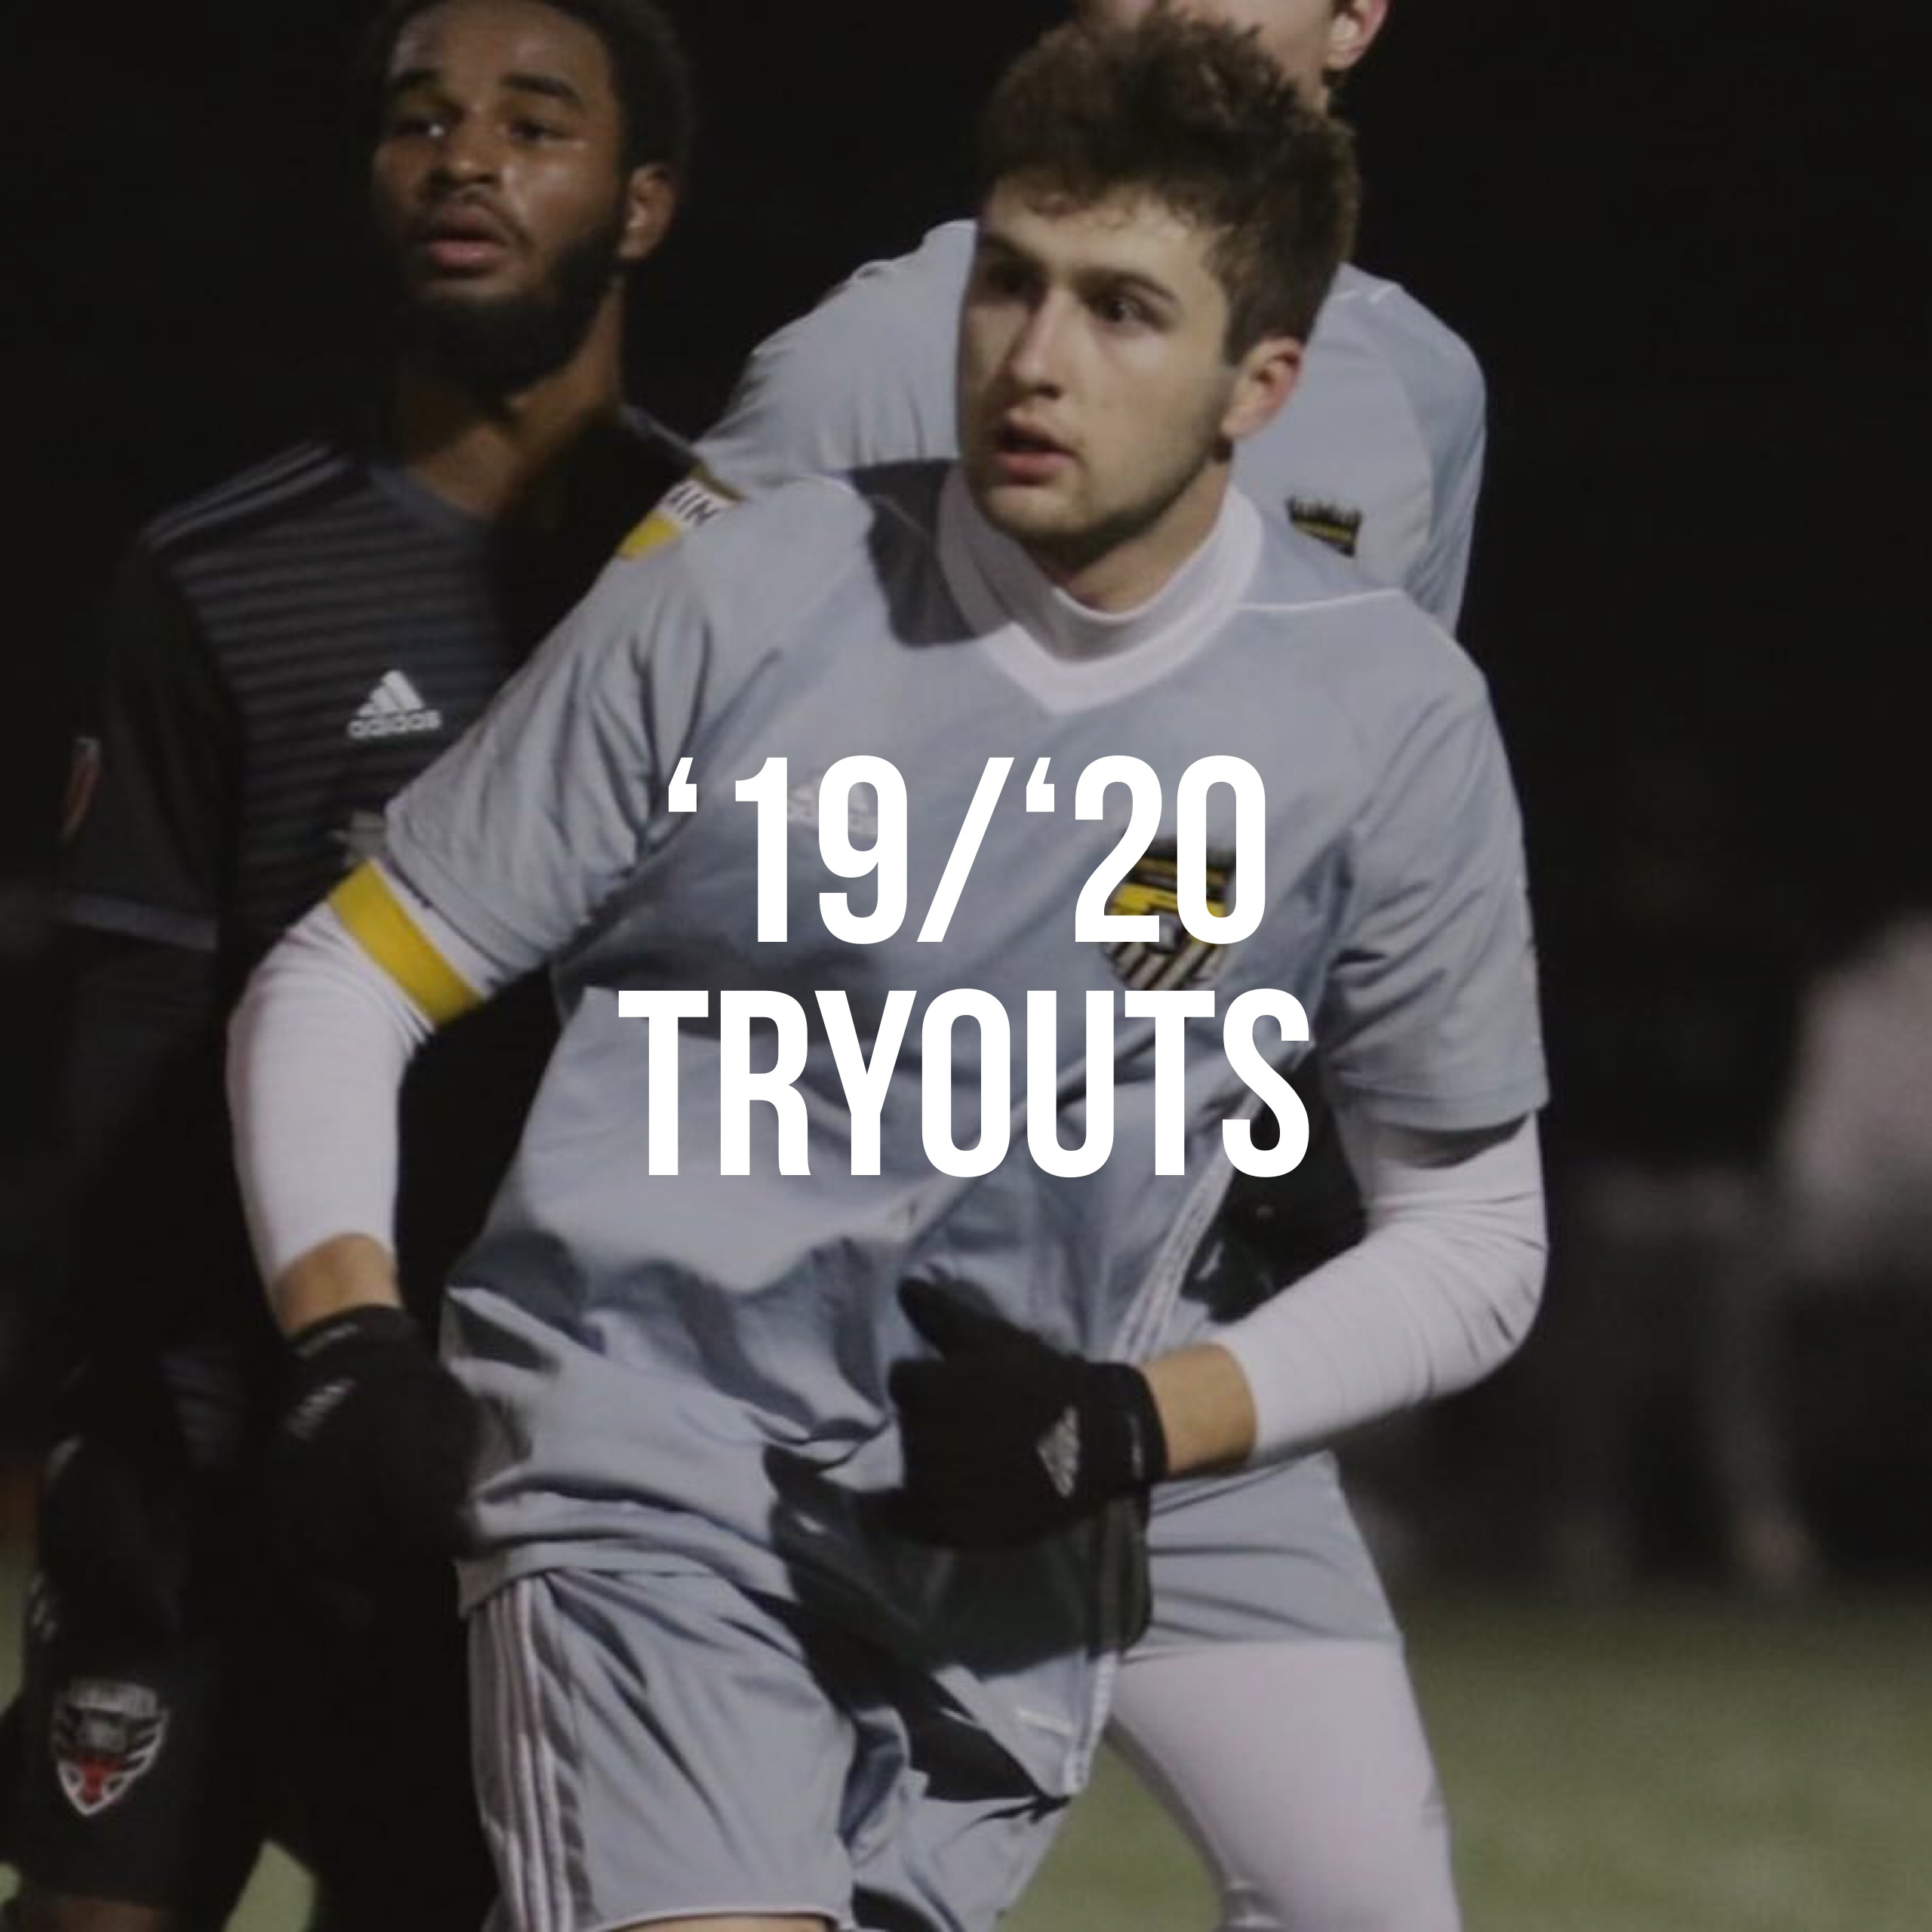 '19/'20 Tryouts